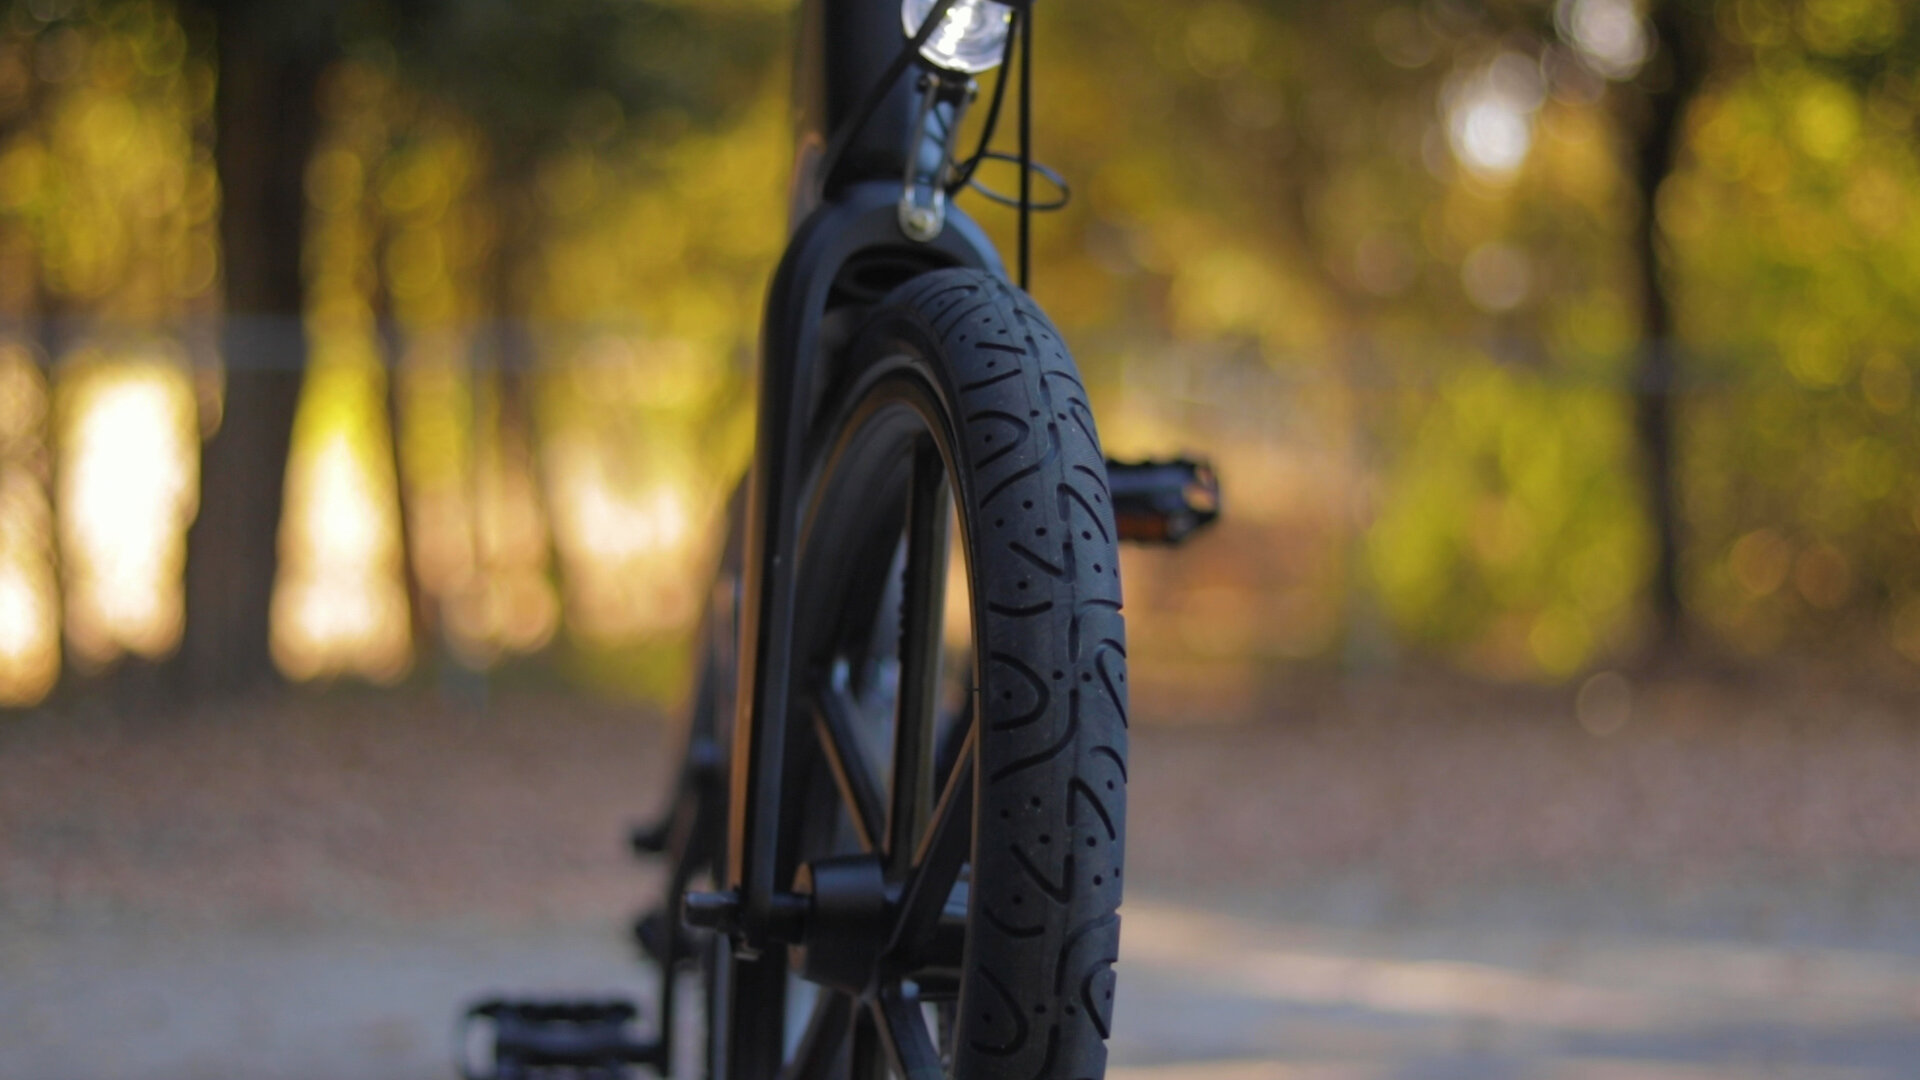 flowdot-electric-bike-review-2019-tire.jpg